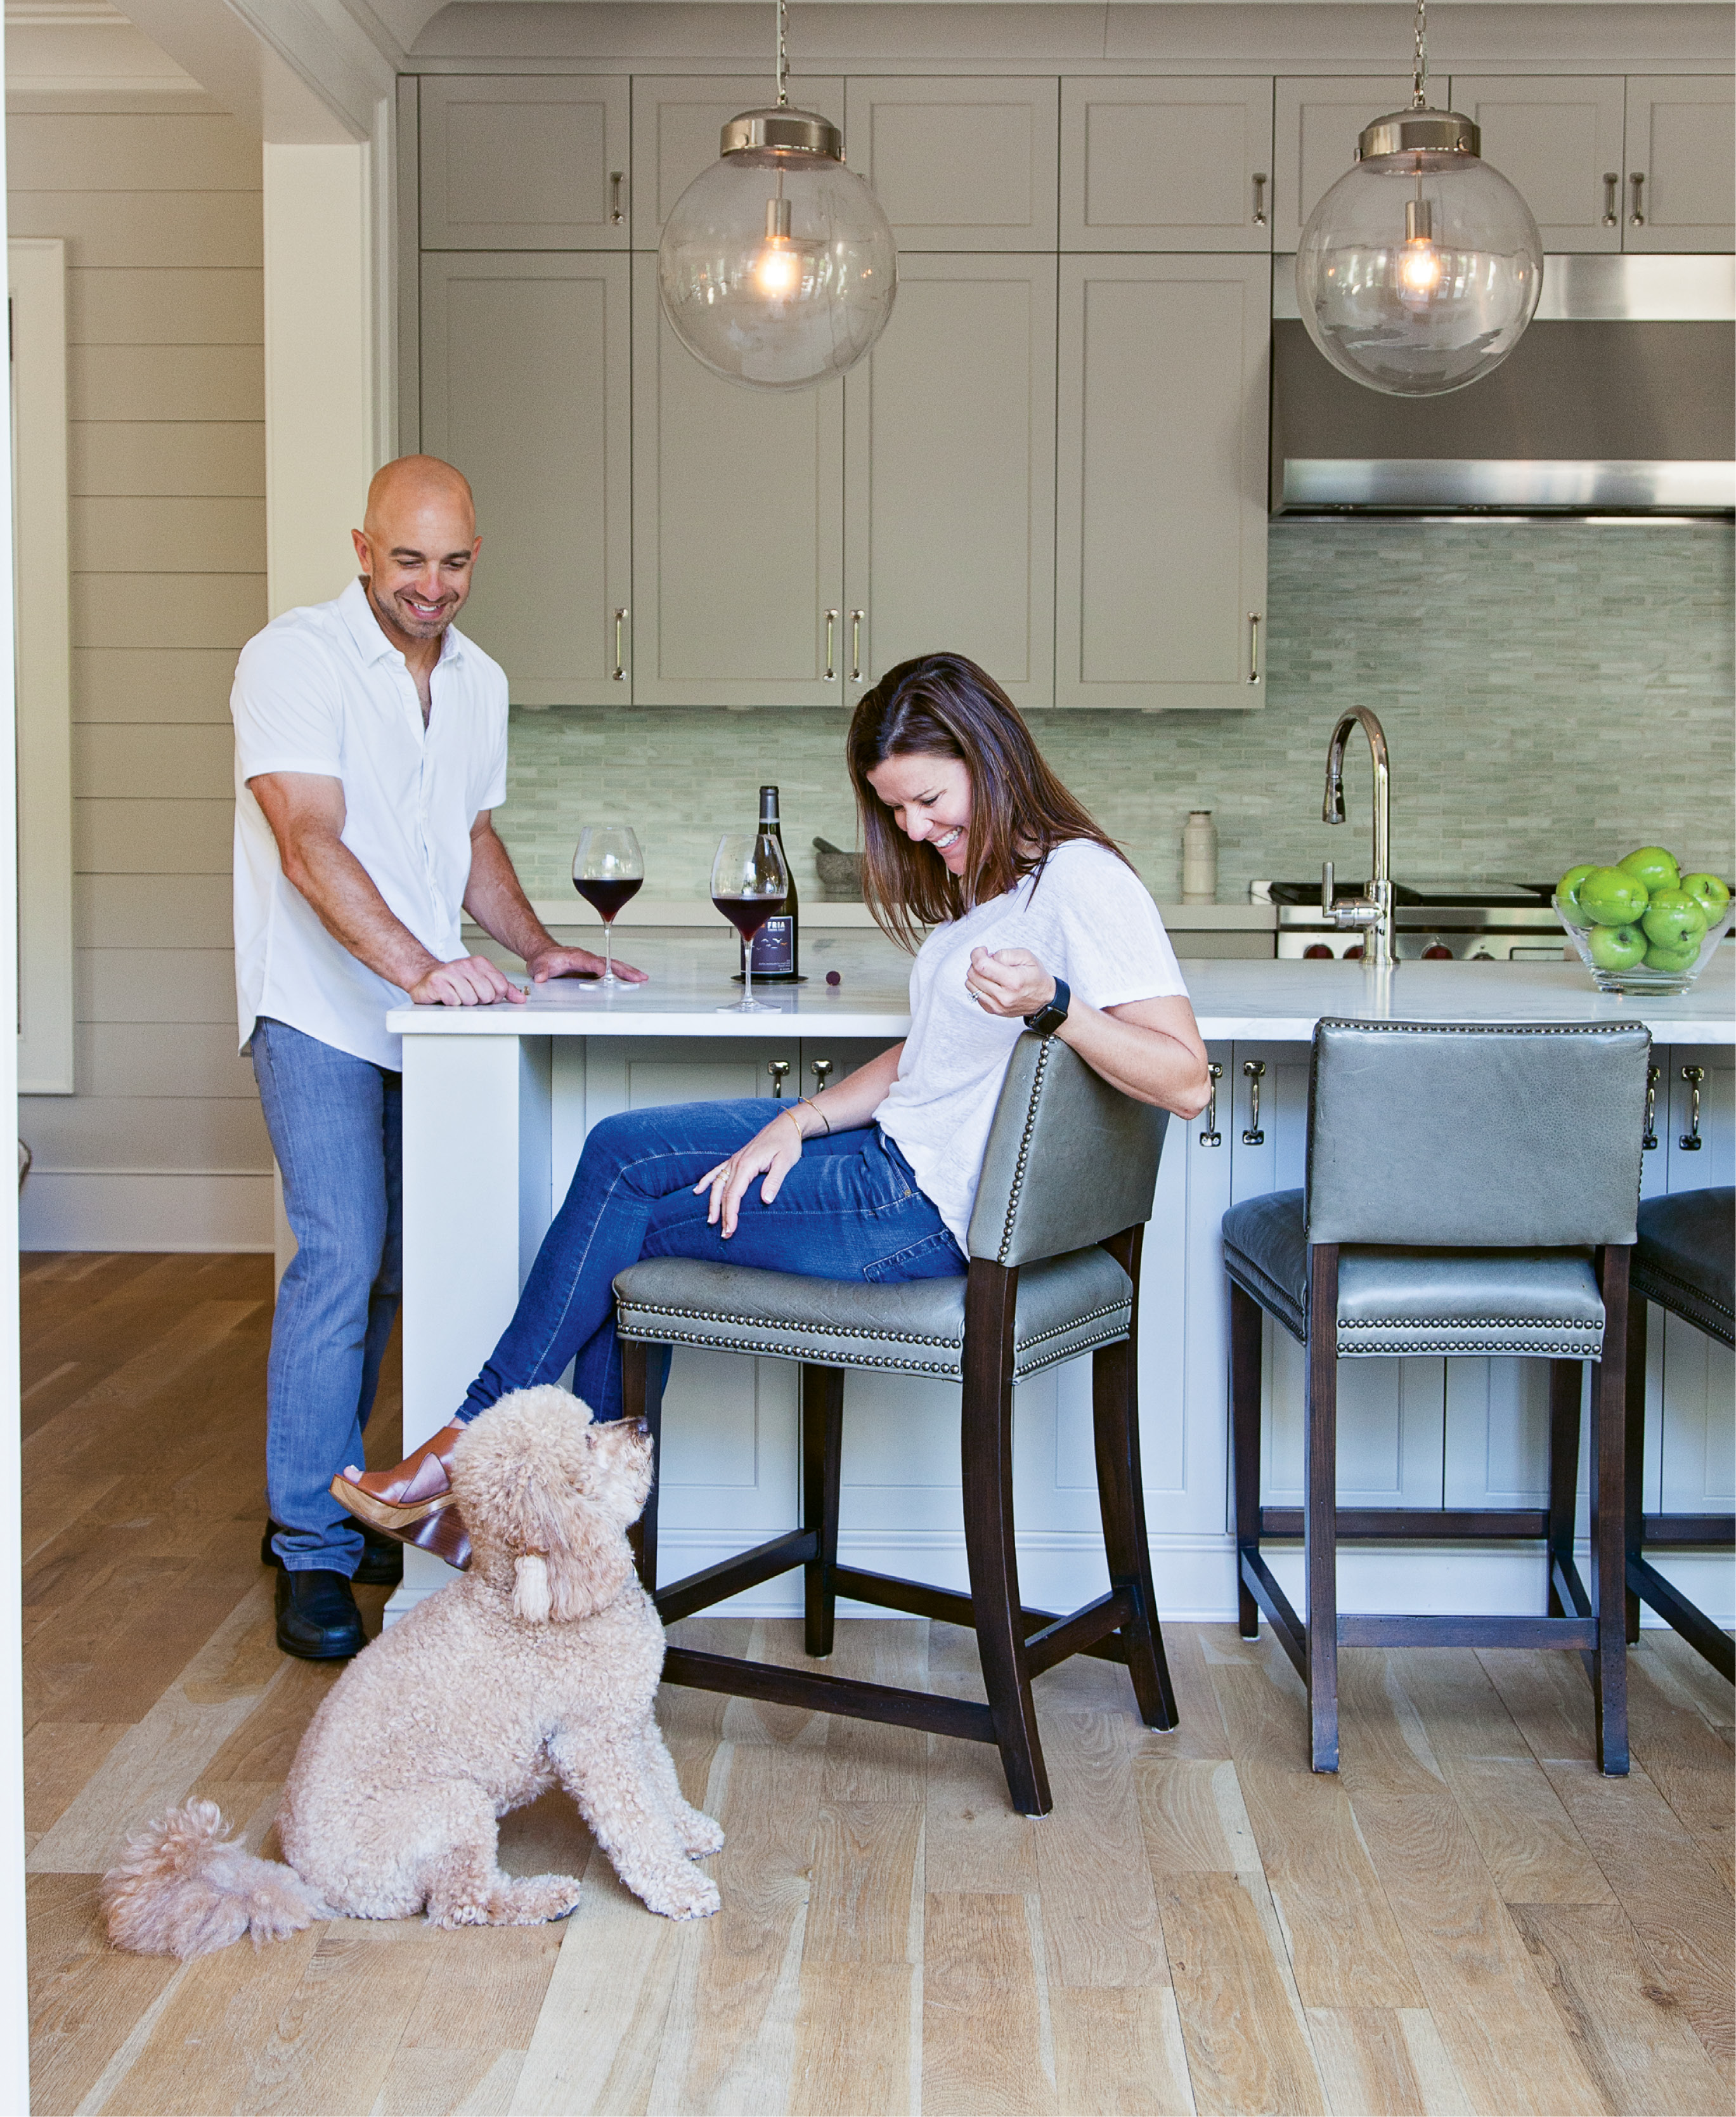 """His passion for all things food and wine were the driving force behind the kitchen design, including his insistence on an """"island that's almost too big,"""" he says. Rusty, their mini Goldendoodle, blends in (adorably) with the unfinished white oak floors."""